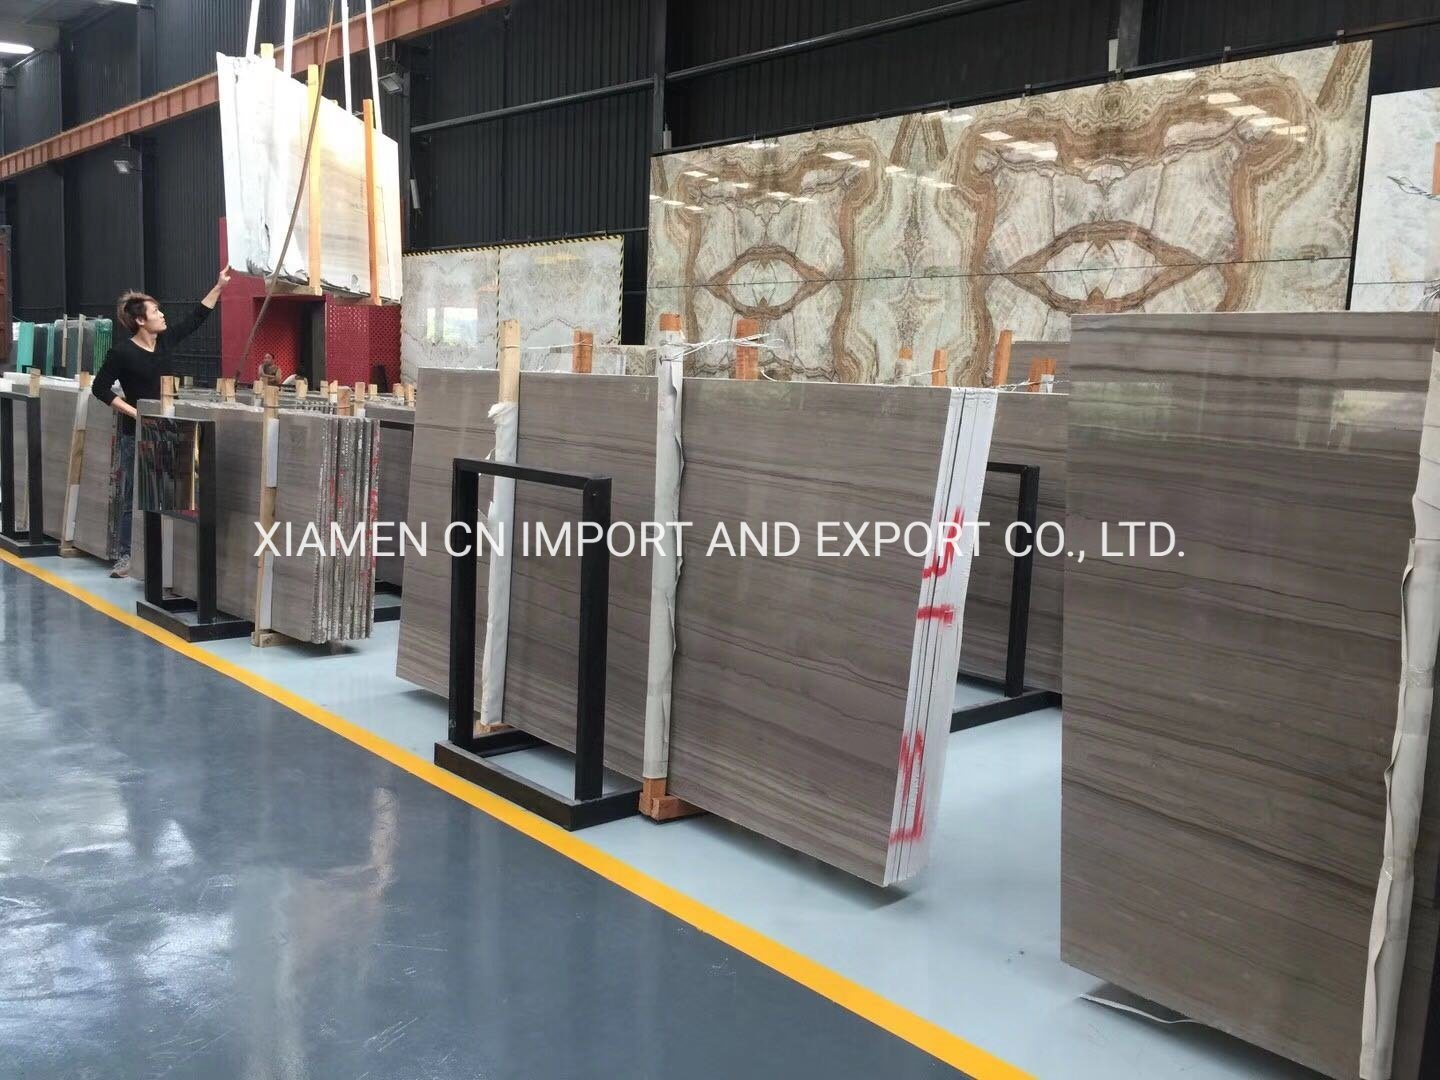 China Natural White Black Grey Beige Green Brown Blue Pink Red Travertine Limestone Onyx Stone Marble For Countertops Vanity Tops Floor Wall Tiles Building Material China Marble Slab Marble